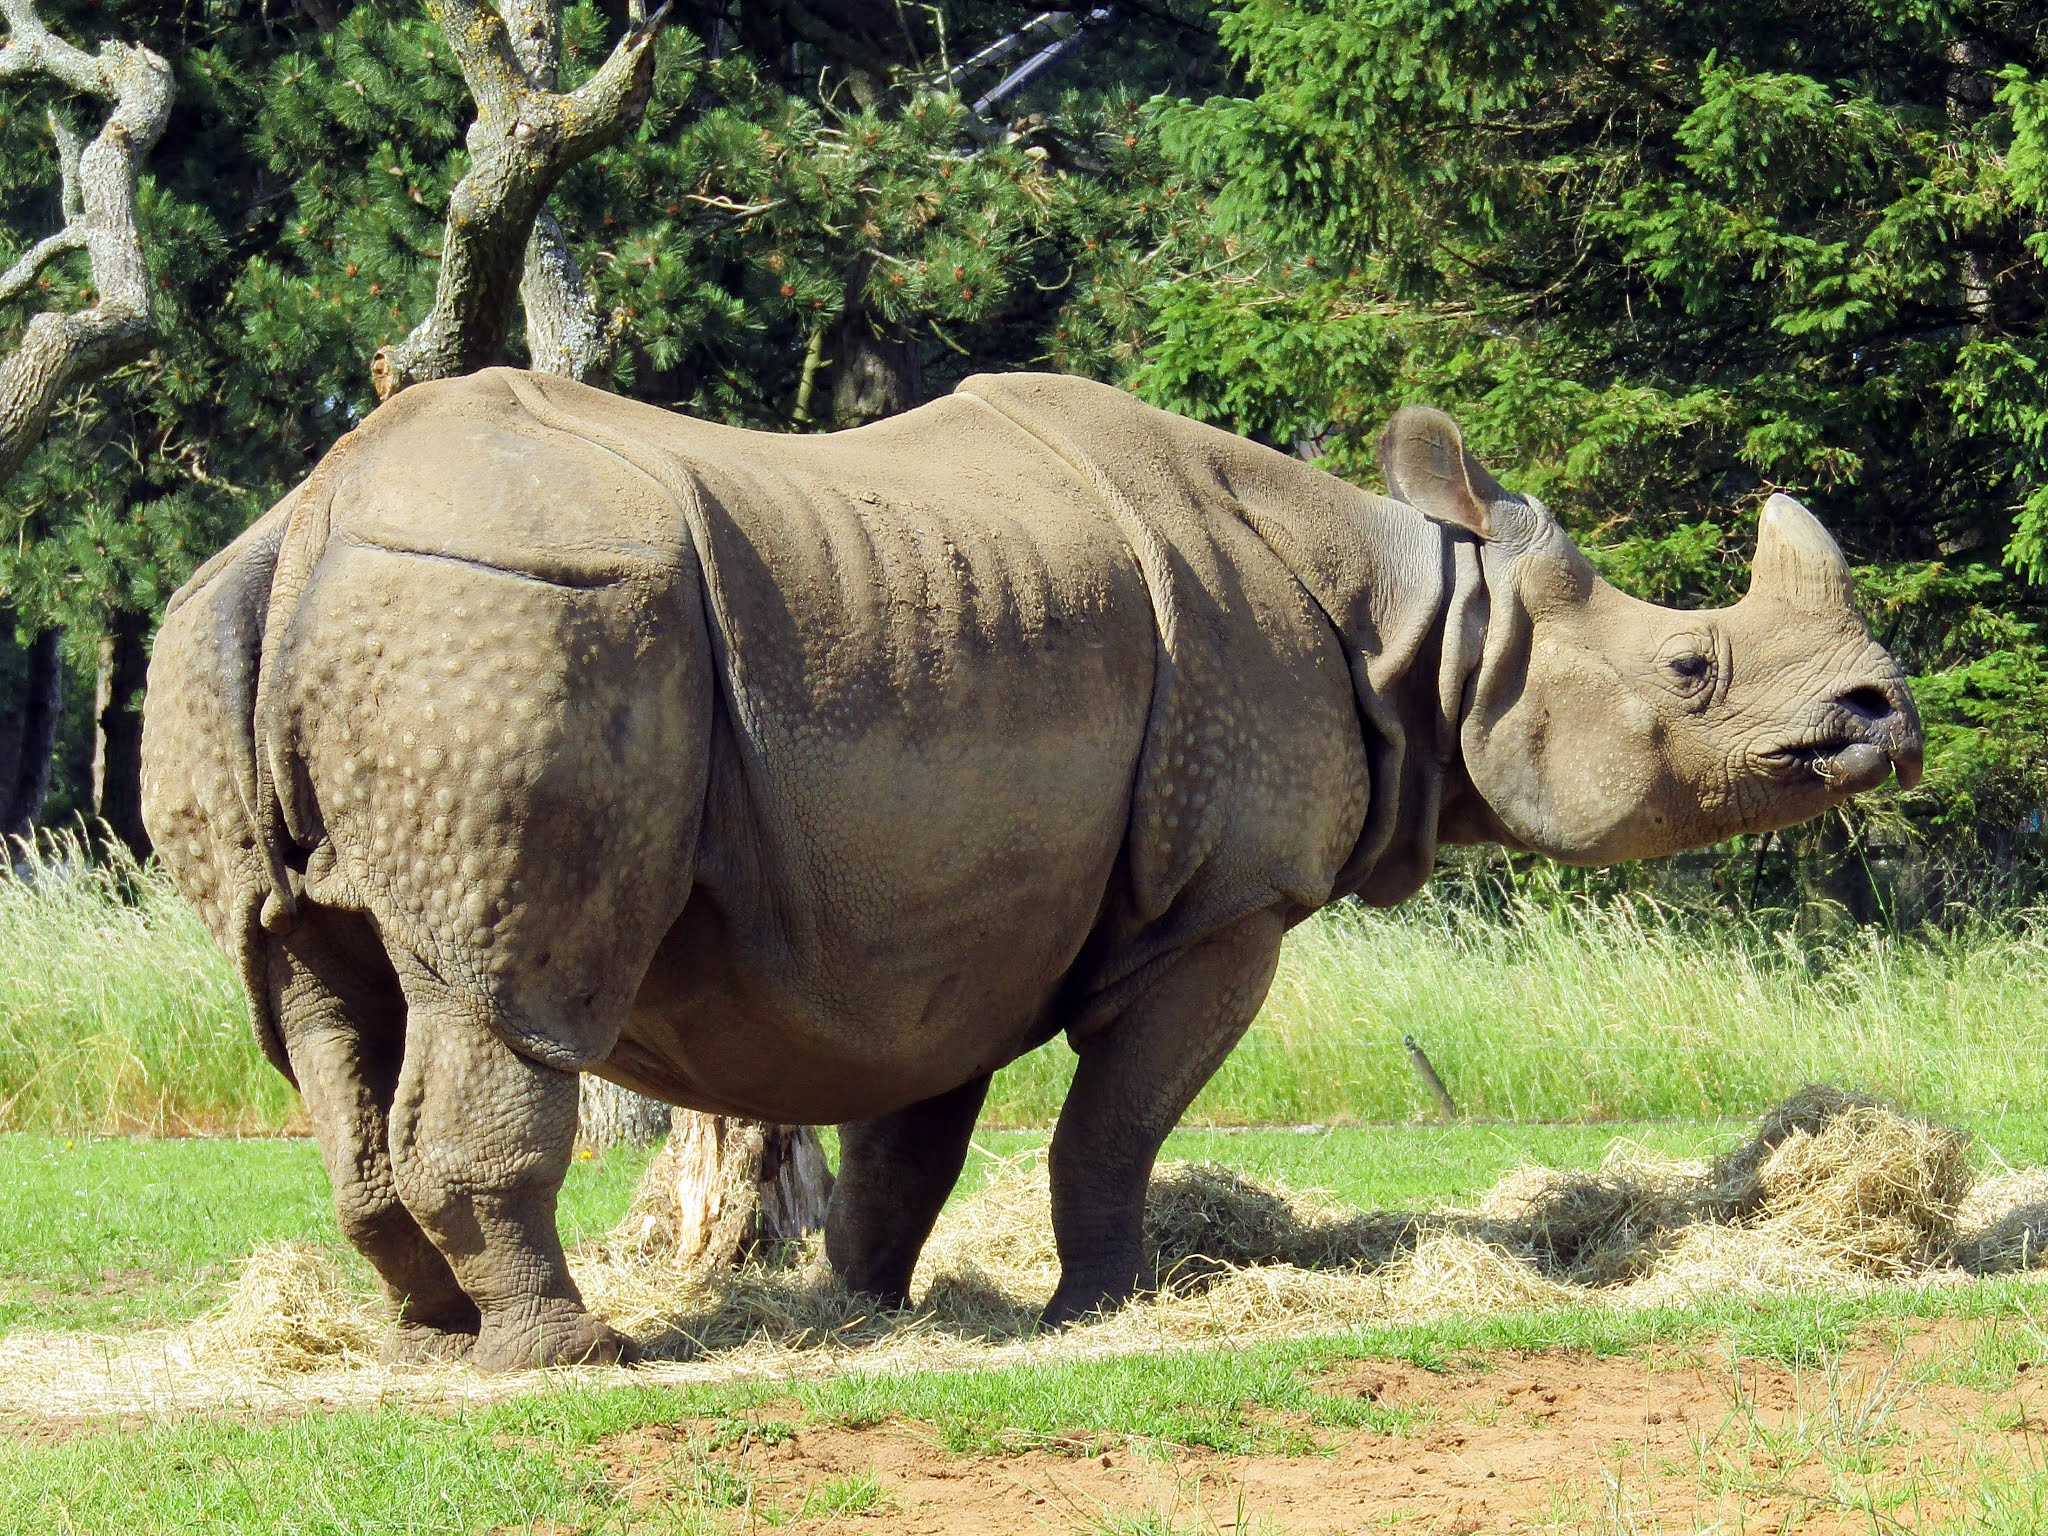 A photo of an adult greater one-horned rhino grazing at Whipsnade Zoo.